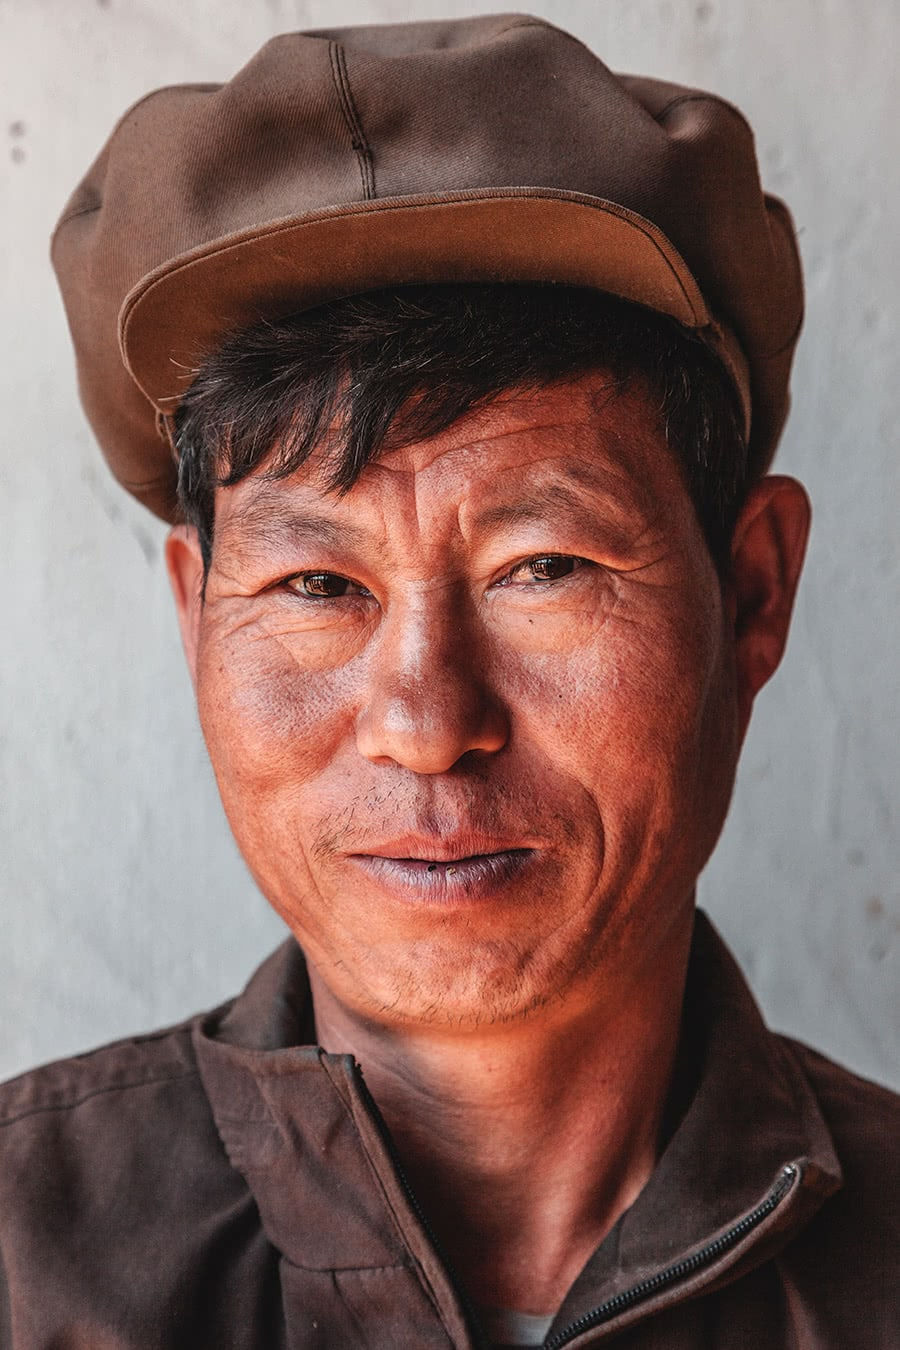 A cooperative farm worker in Hamhung, North Korea.